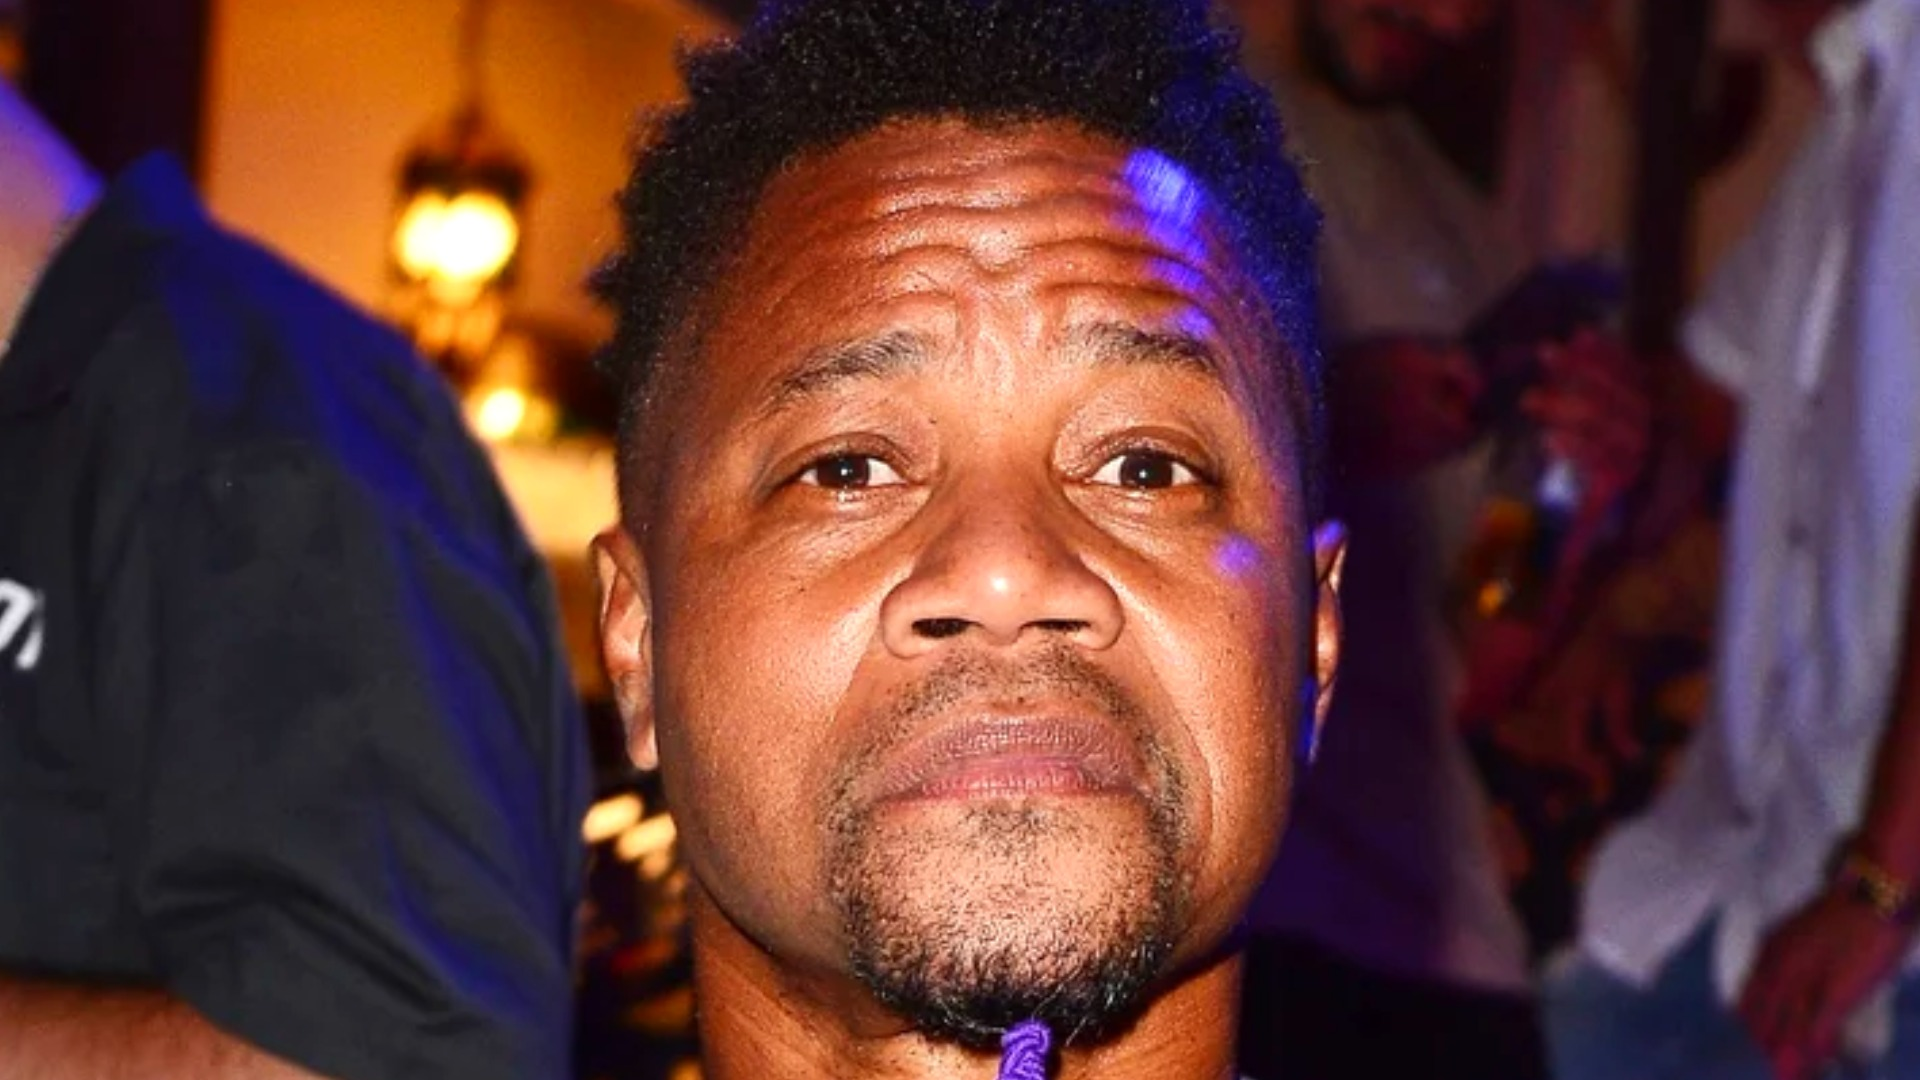 The Massive Comedy Flop That Almost Ruined Cuba Gooding Jr.'s Career